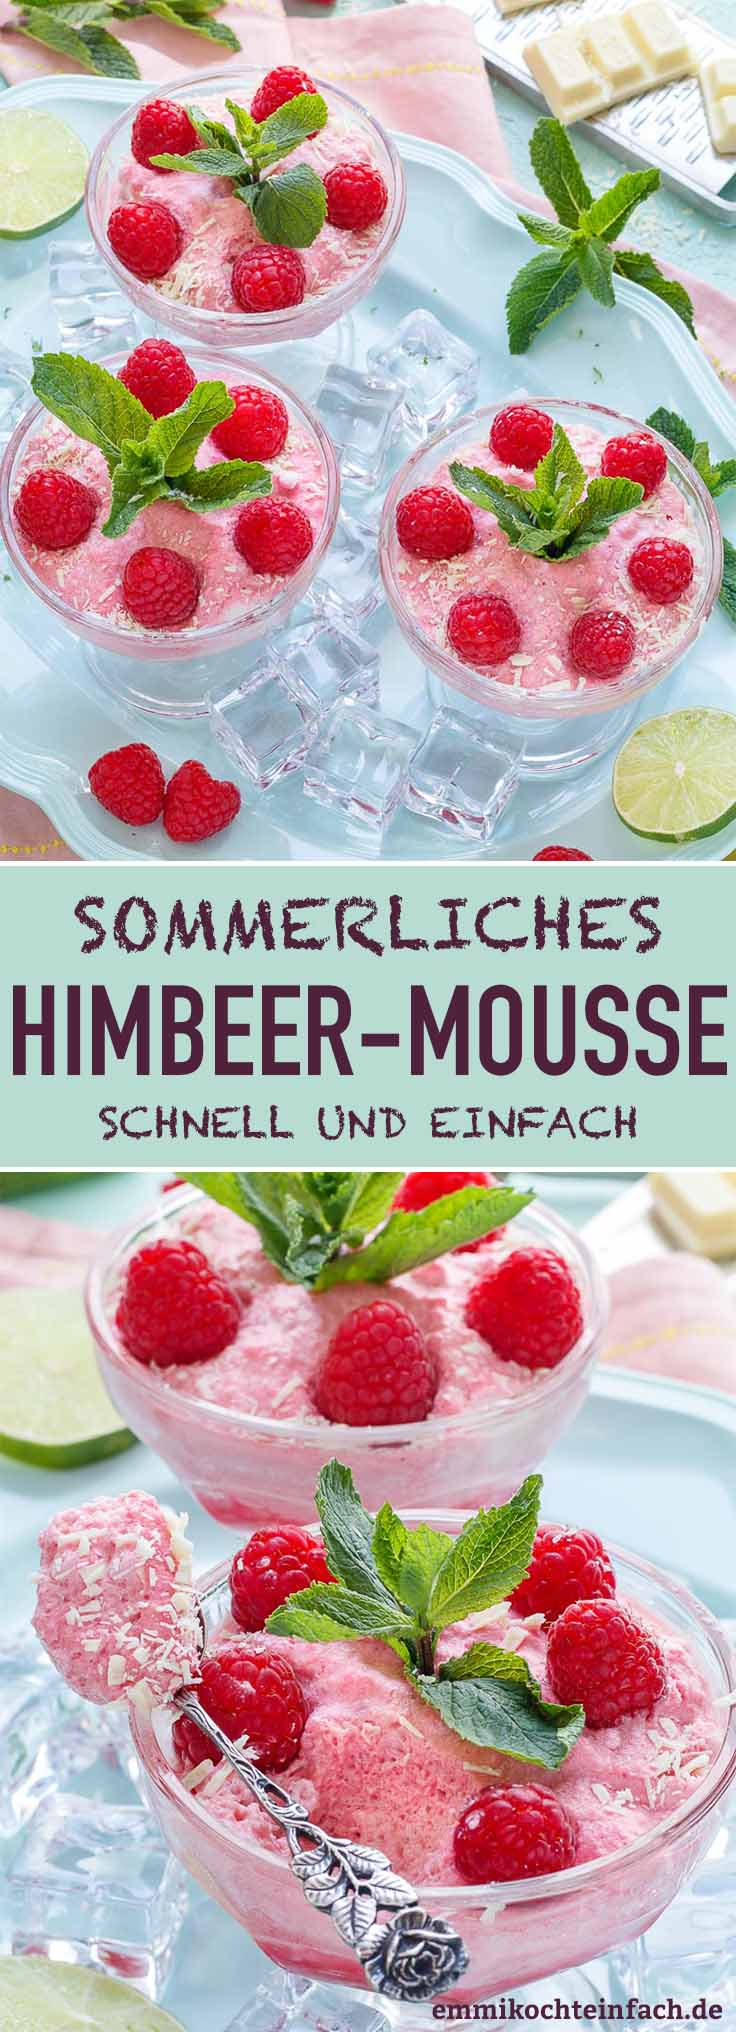 Sommerliches Himbeer Mousse - www.emmikochteinfach.de